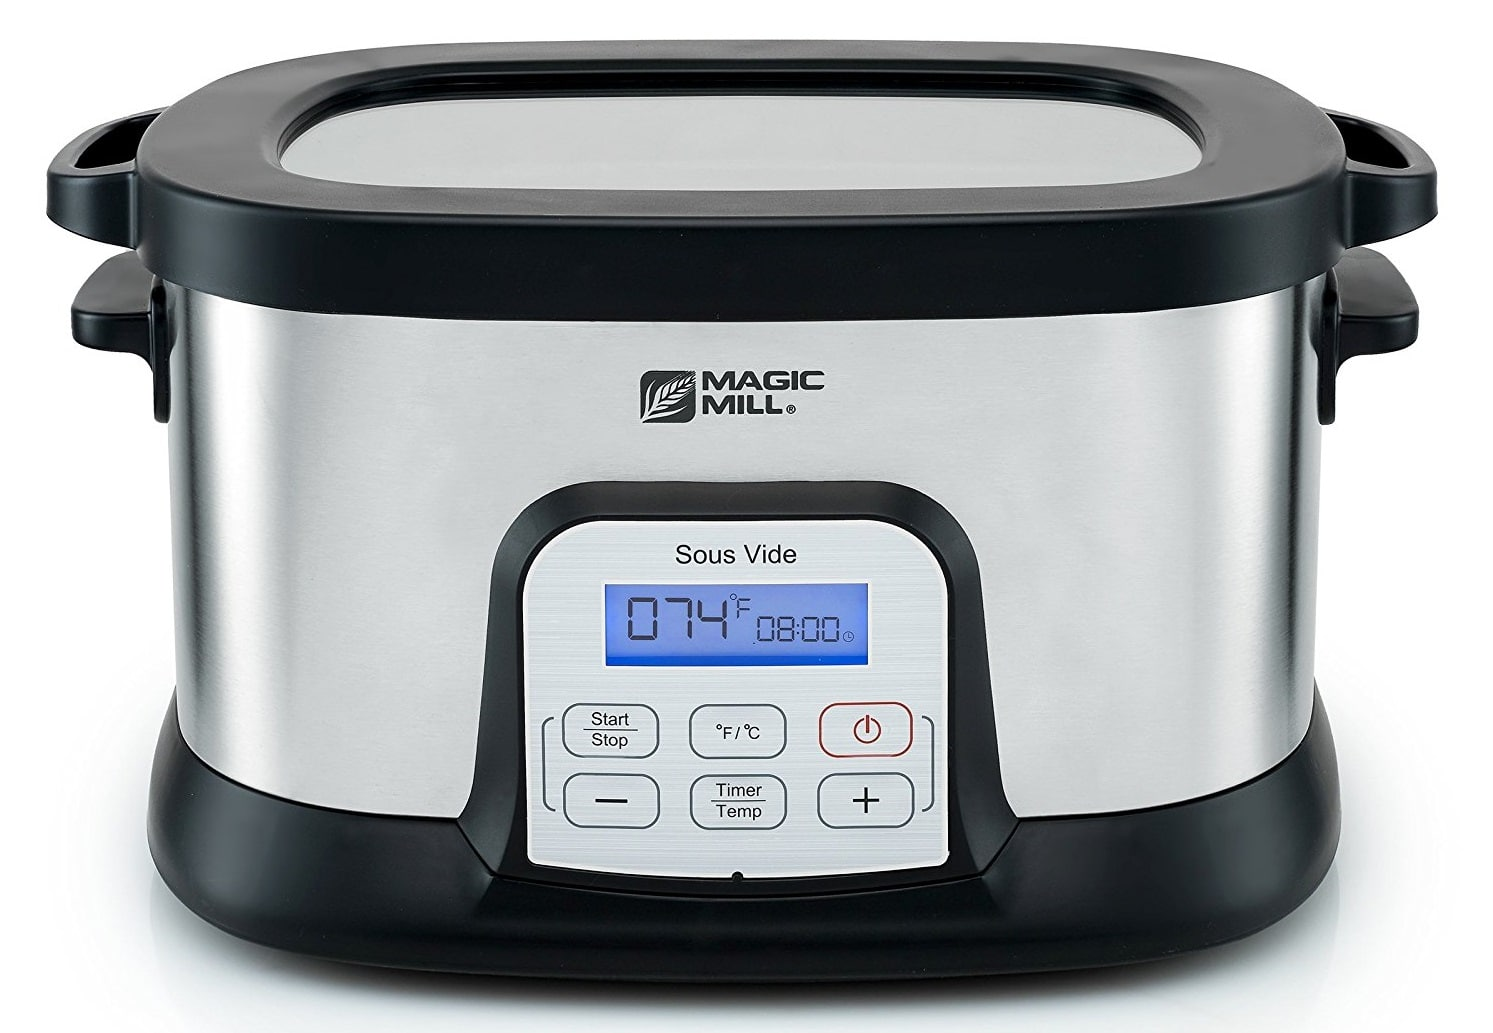 magic mill 9 quart sous vide machine review updated 2018. Black Bedroom Furniture Sets. Home Design Ideas